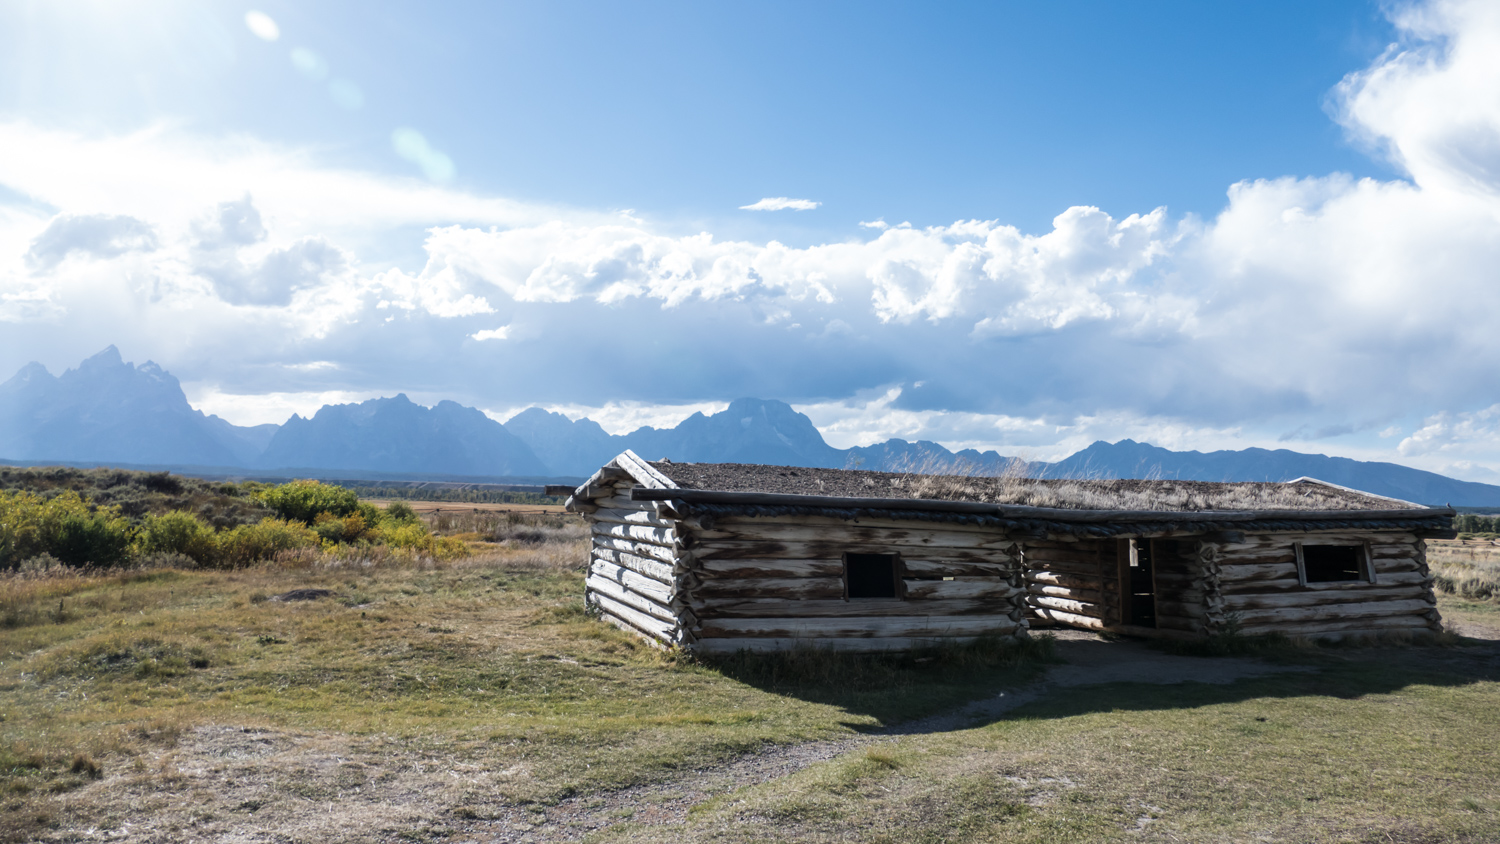 Cunningham cabin with Tetons in the background.